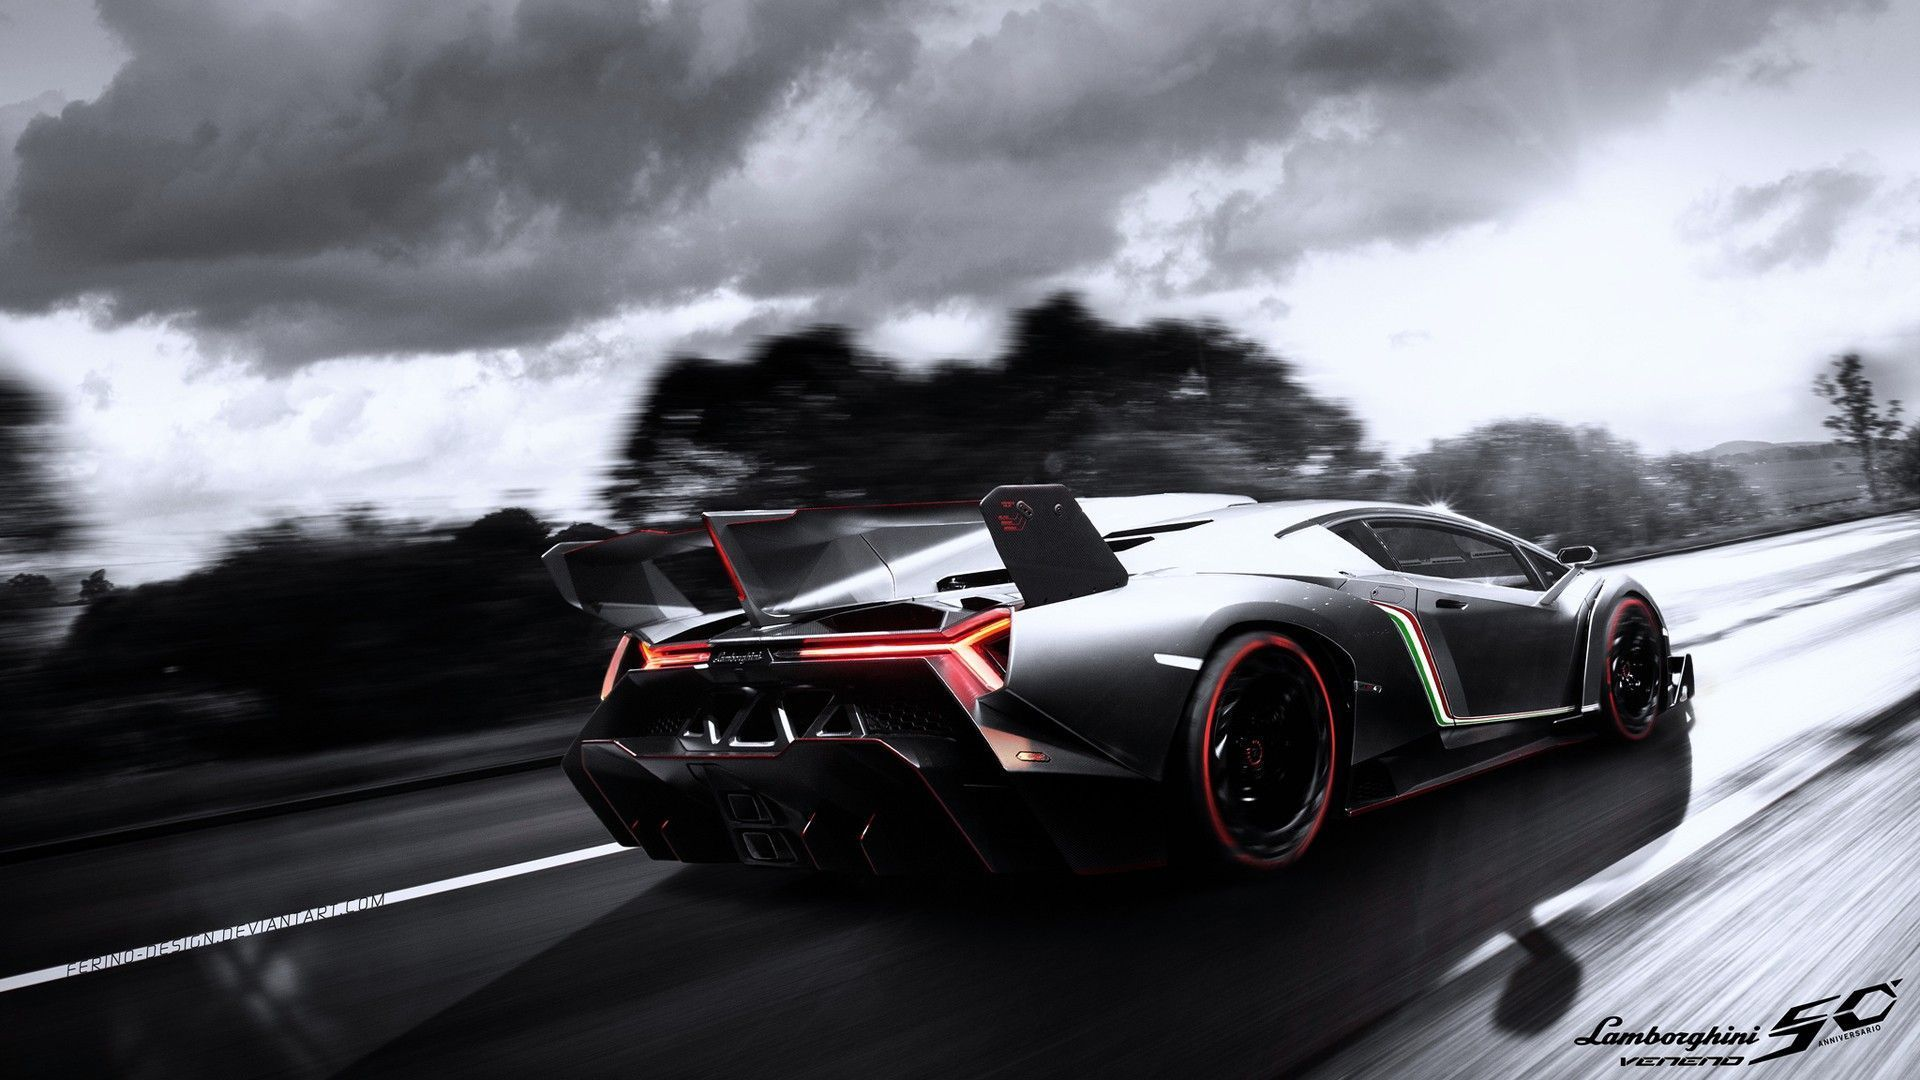 Lamborghini Veneno Wallpapers Group 1920x1080 Wallpaper 53